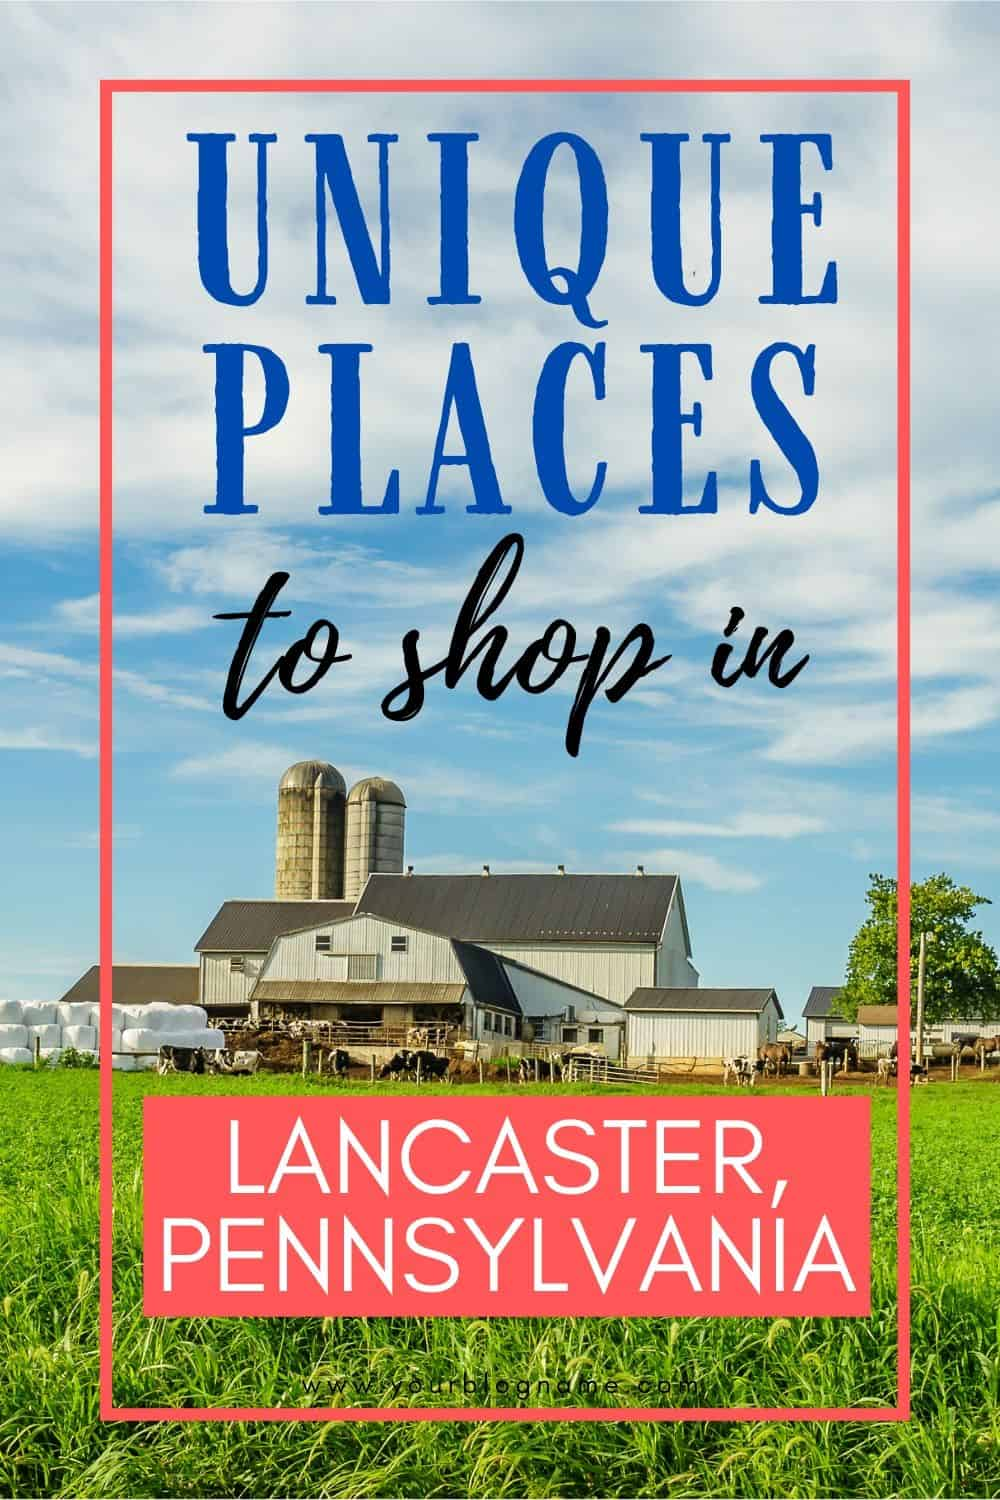 From shopping to sightseeing, there is so much to do in Lancaster, PA. Here are my favorite Unique Places To Shop In Lancaster County, PA. Lancaster, Pennsylvania is one of my favorite places to visit. Home to the Pennsylvania Dutch, or Amish, this county is peaceful, quint and full of lots of wonderful shopping experiences. #lancasterpa #familytravel #pennsylvania #pennsylvaniadutch